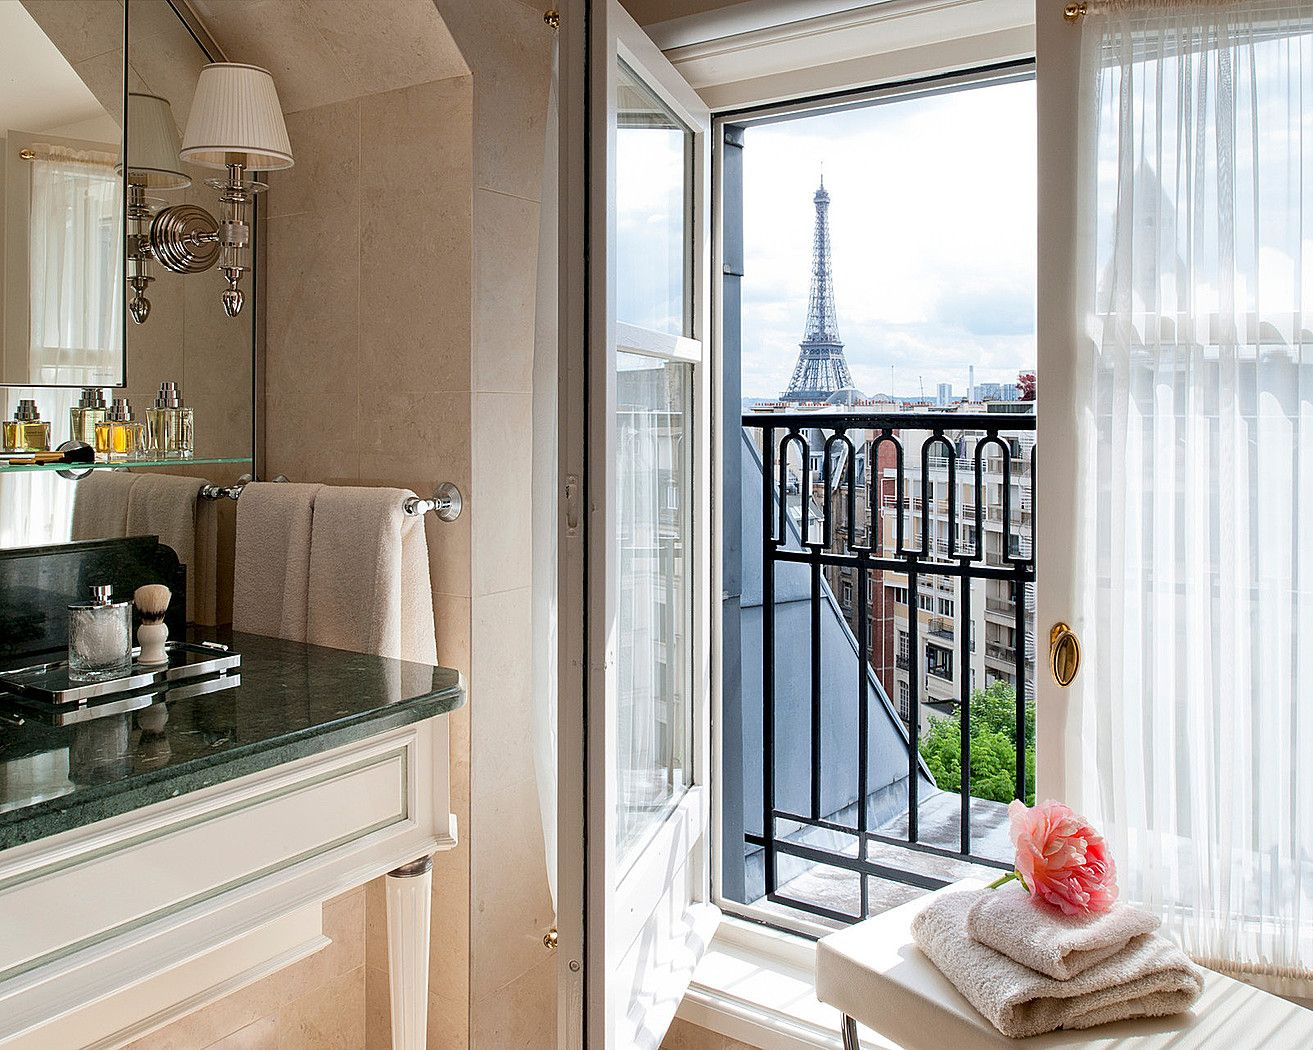 An incredible site for learning everything about luxury hotels and the French art of welcoming on this site: http://www.laurentdelporte.com/en/ A bath with a view! @Four Seasons Hotel George V Paris.